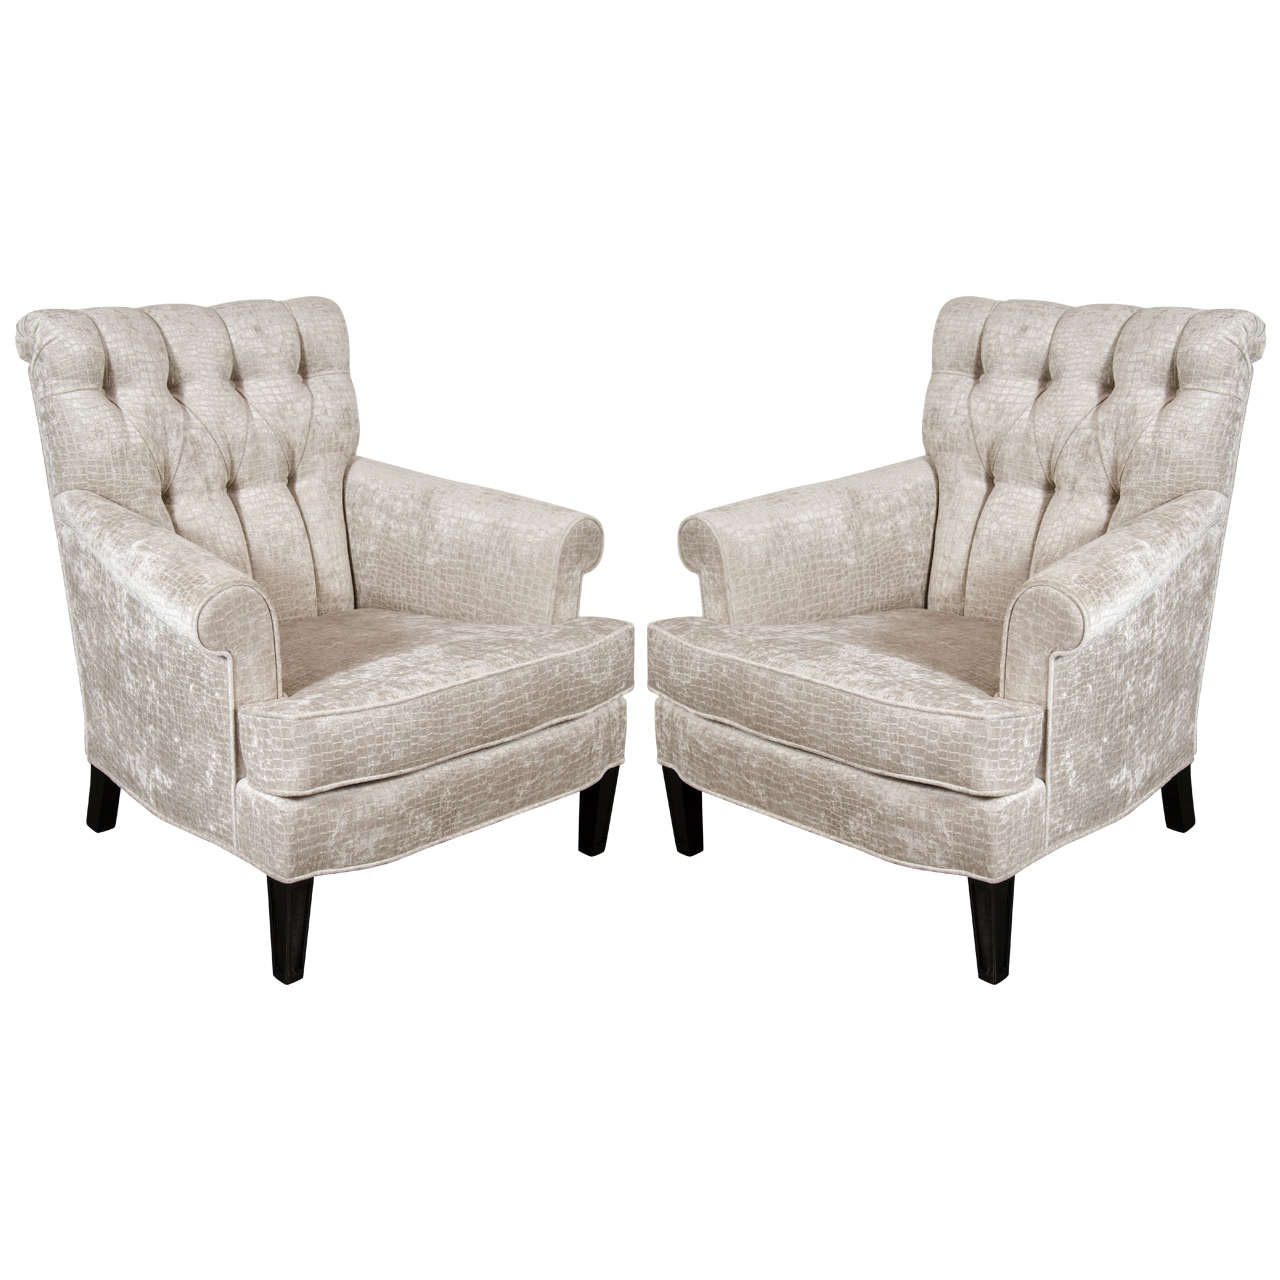 velvet tufted chair wicker cushion pair of mid century back scroll arm club chairs in crocodile for